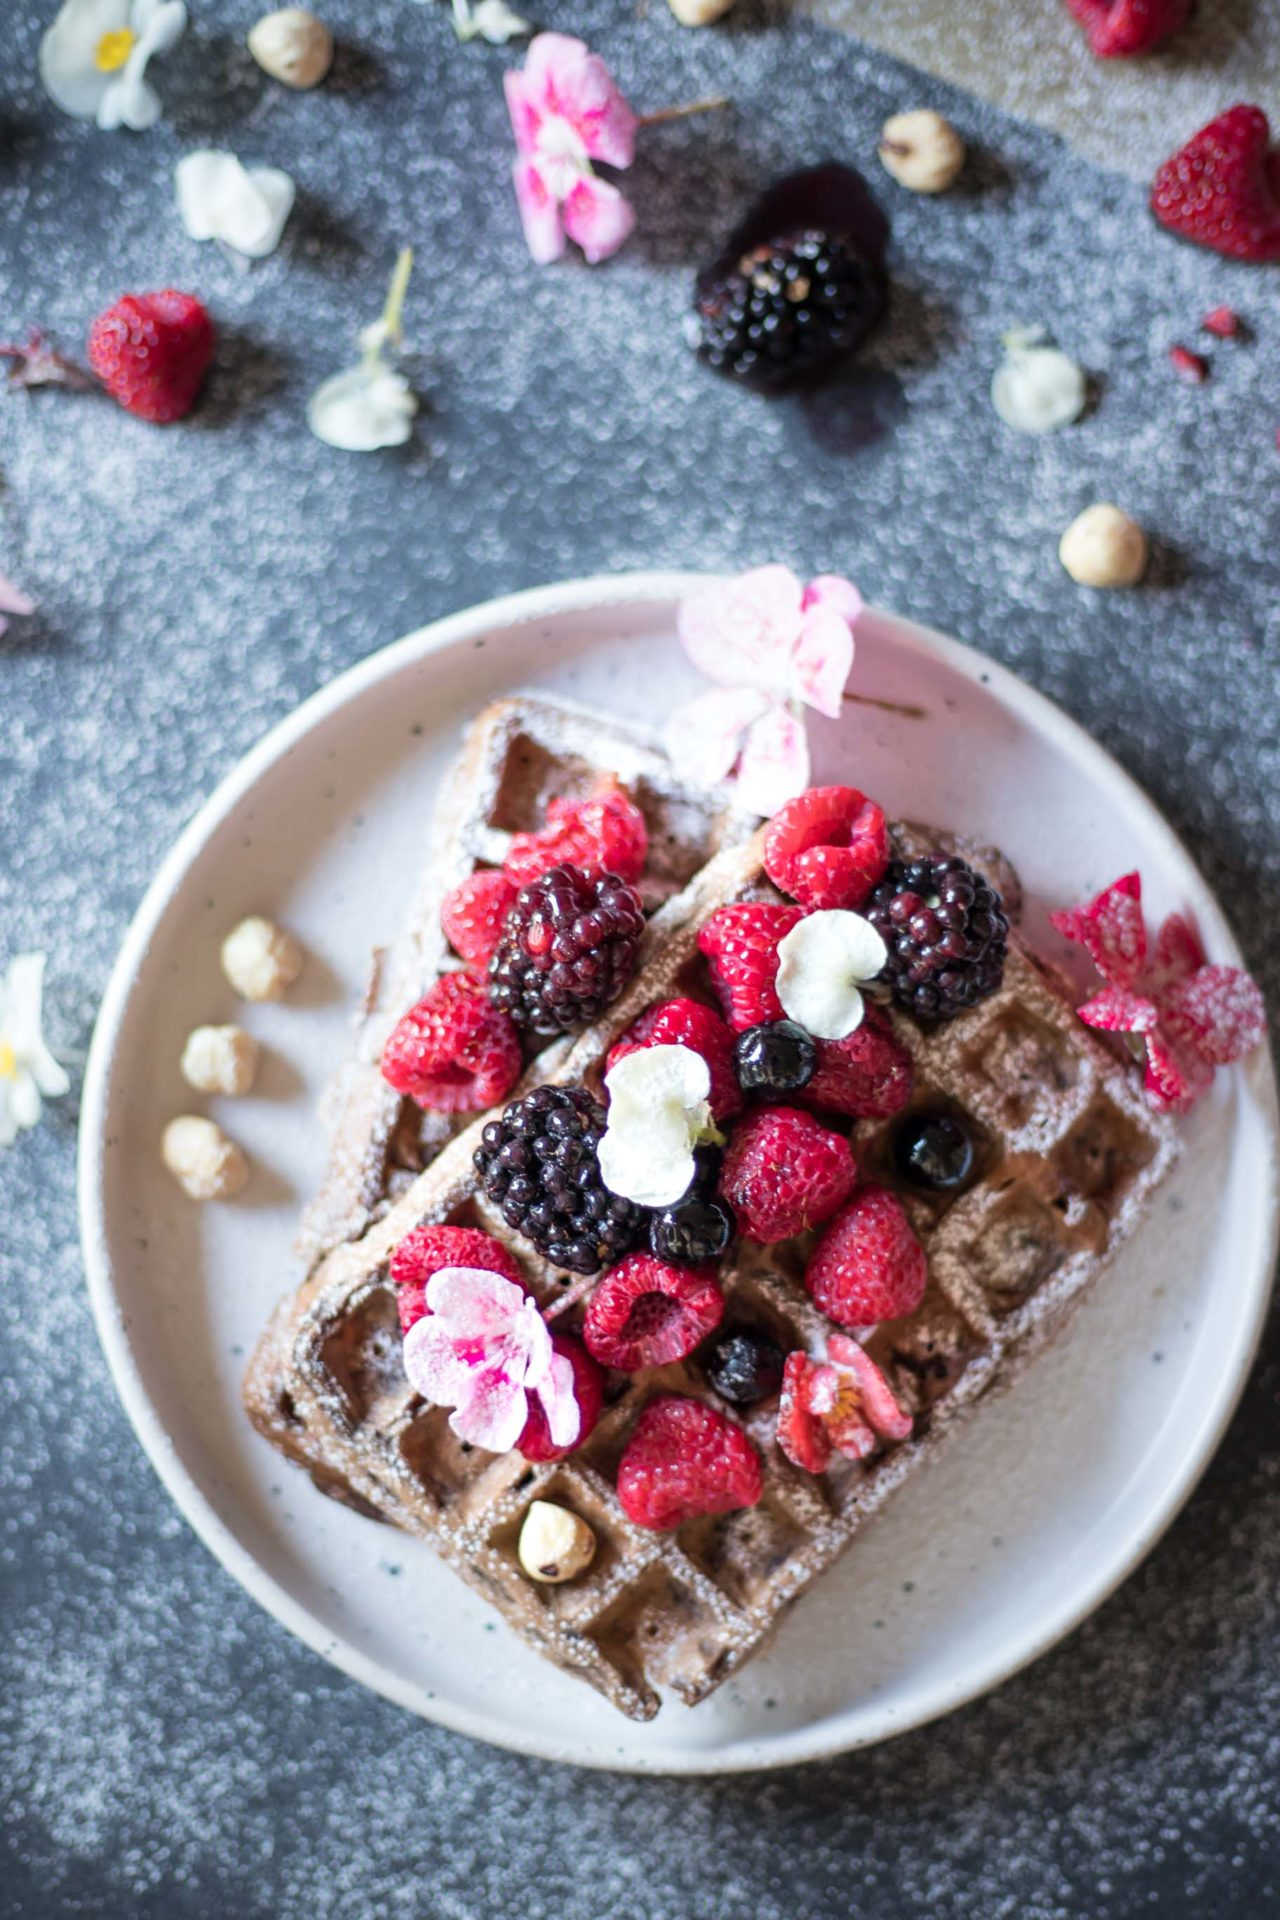 Low FODMAP and Gluten-Free Chocolate Waffles. Only 10 ingredients, simple, flavorful, fluffy, chocolatey and so yum. Perfect indulging breakfast or brunch.